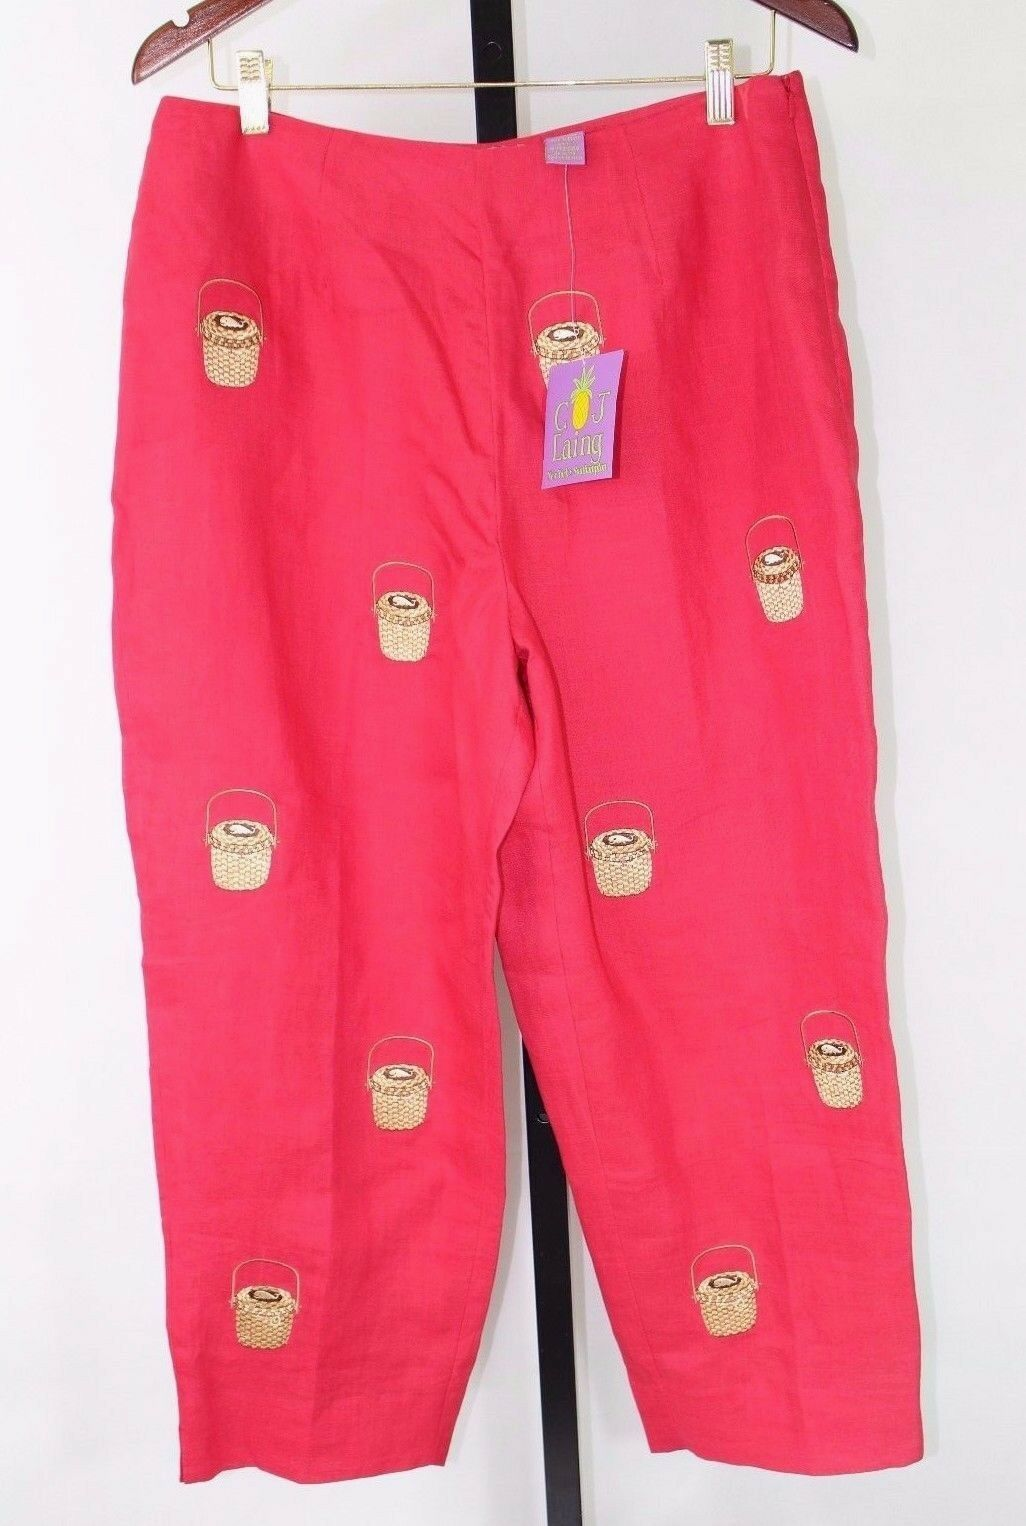 NWT CJ LAING Capris Red with Baskets Pattern 100% Linen - Fully Lined, Size 14